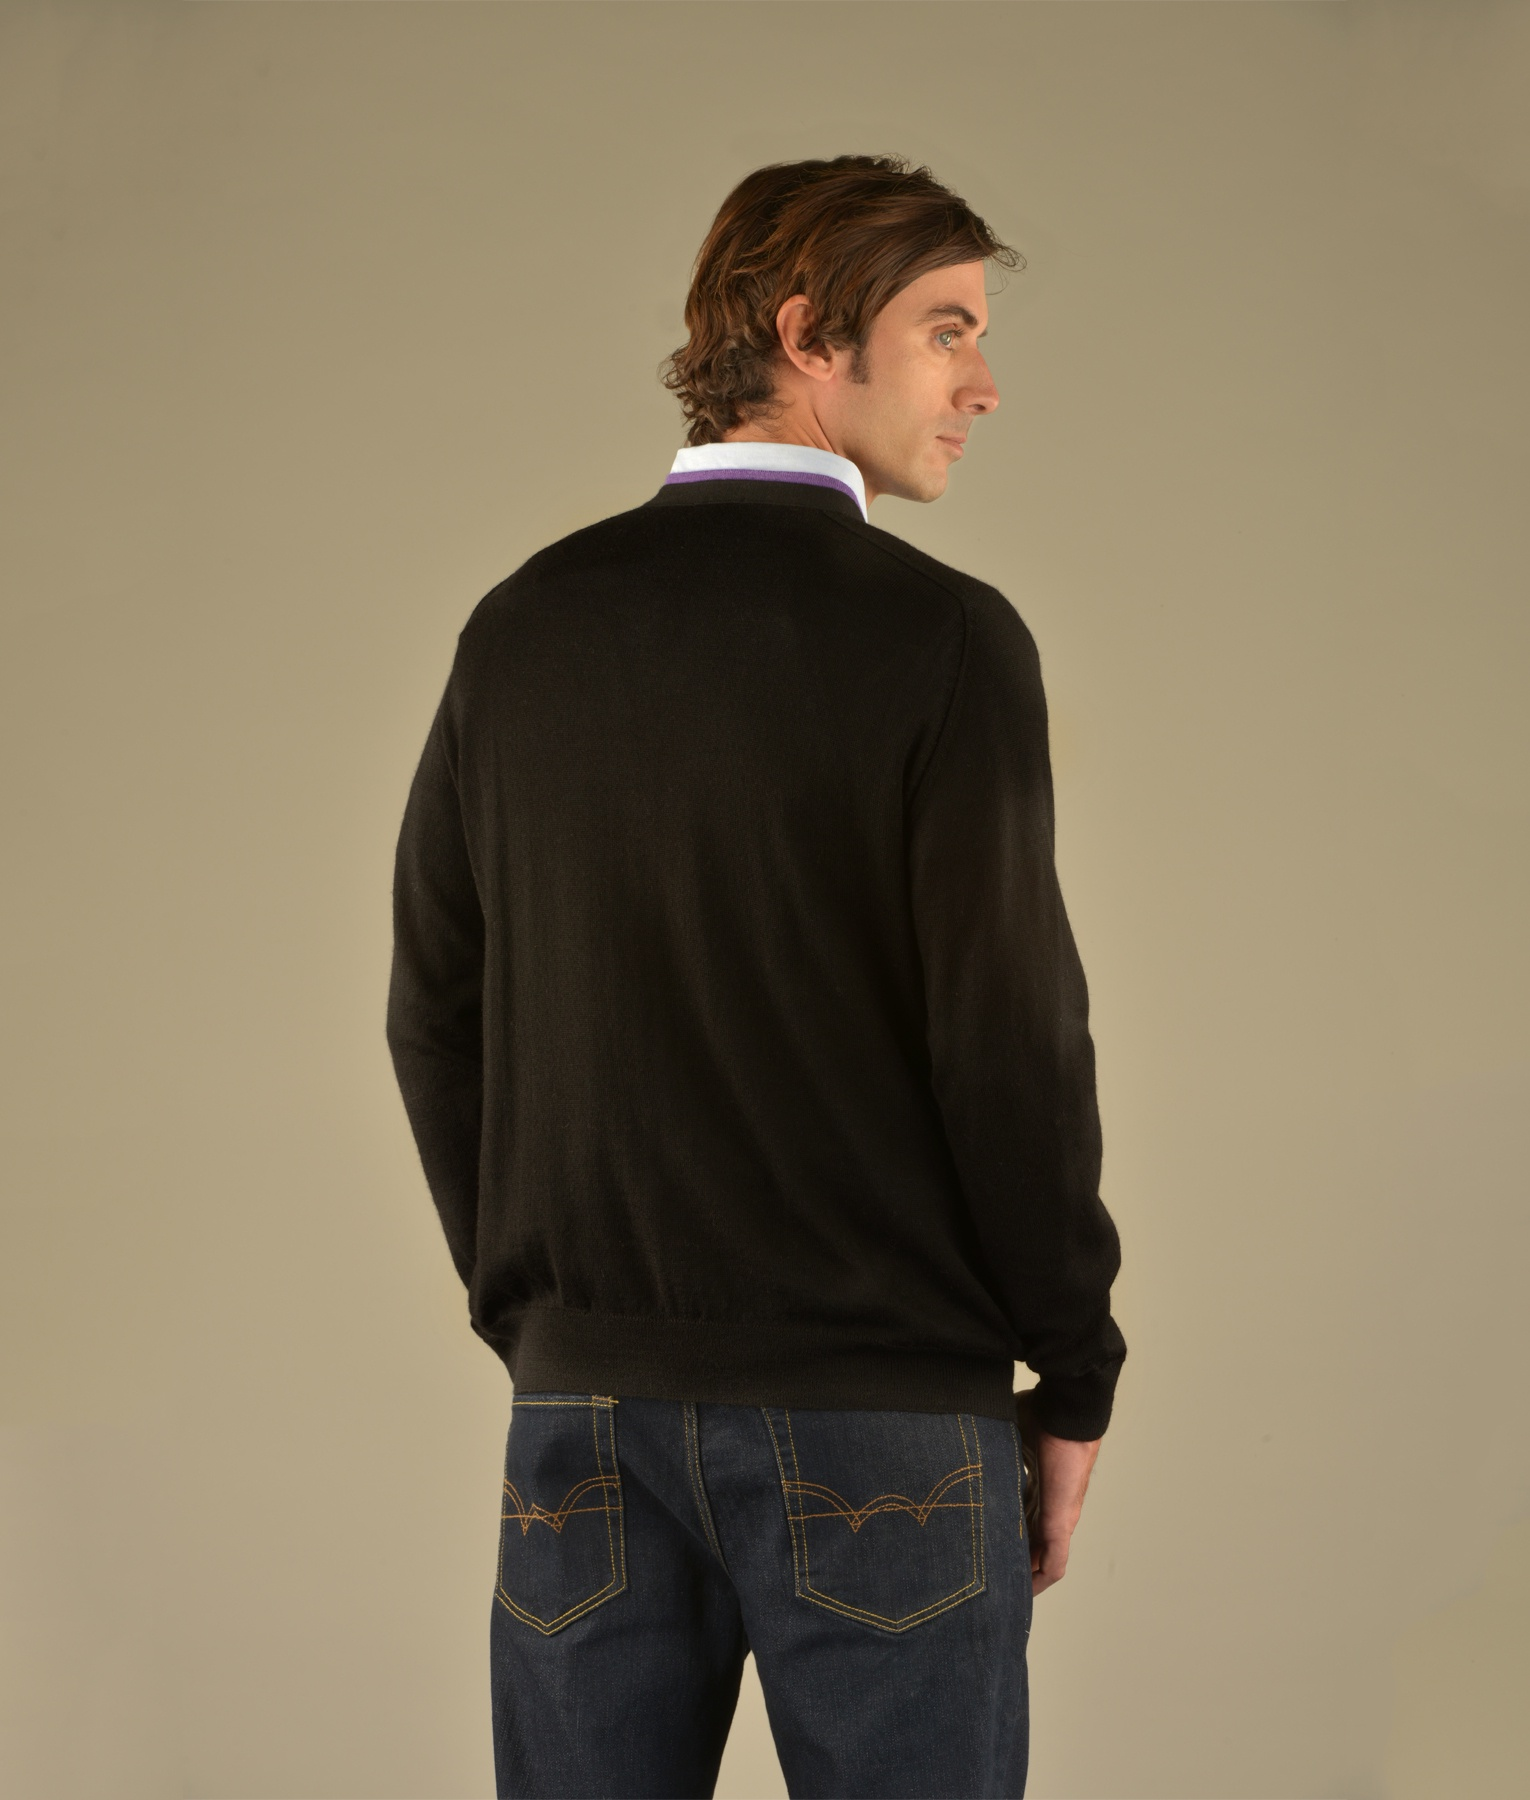 CLASSIC JERSEY SADDLE V NECK SWEATER